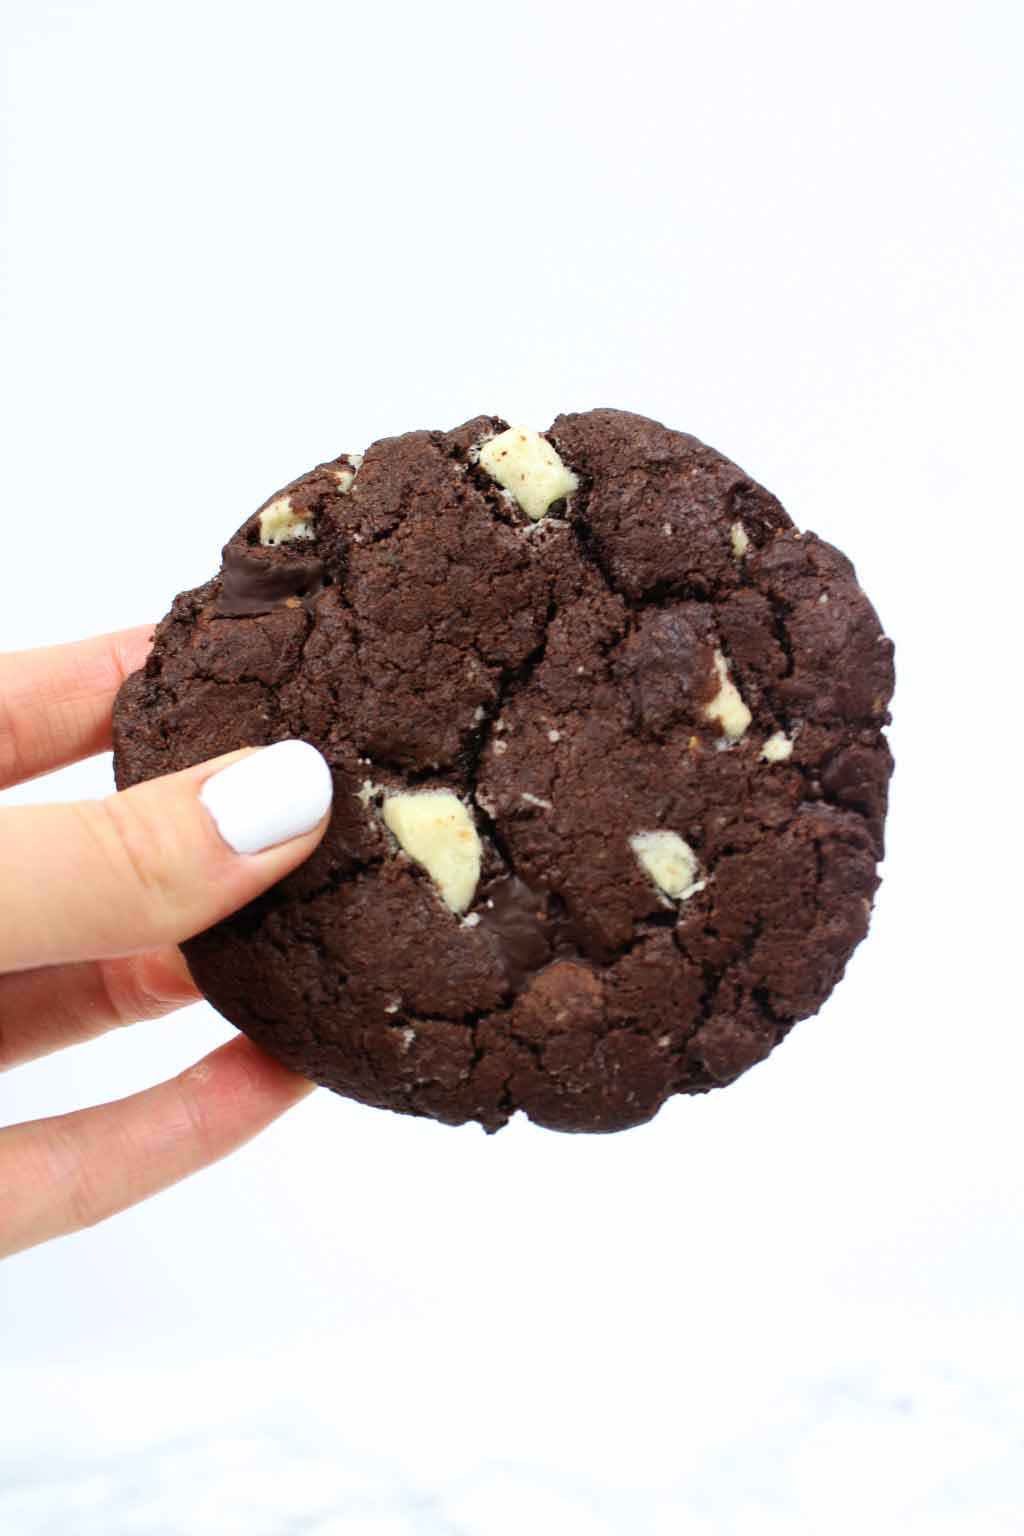 a hand holding a vegan double chocolate cookies